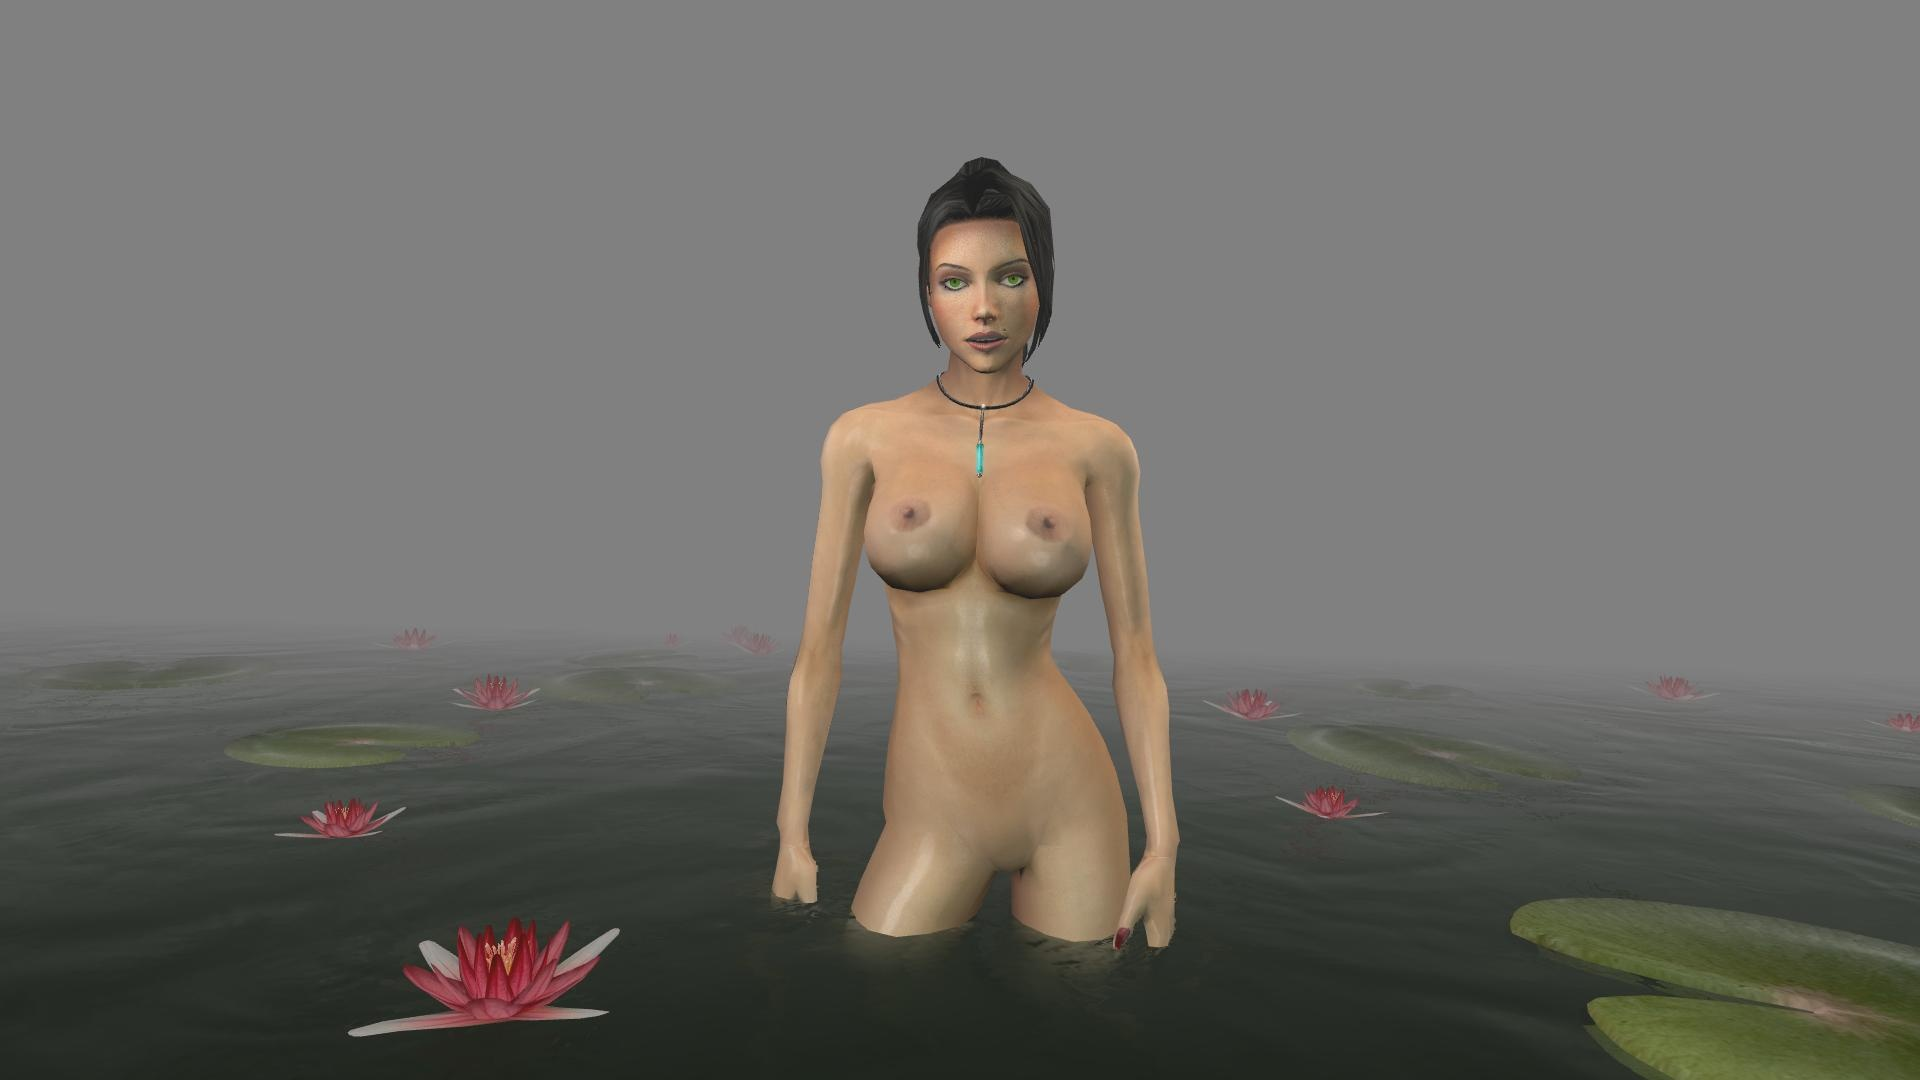 Nude gmod player models adult image